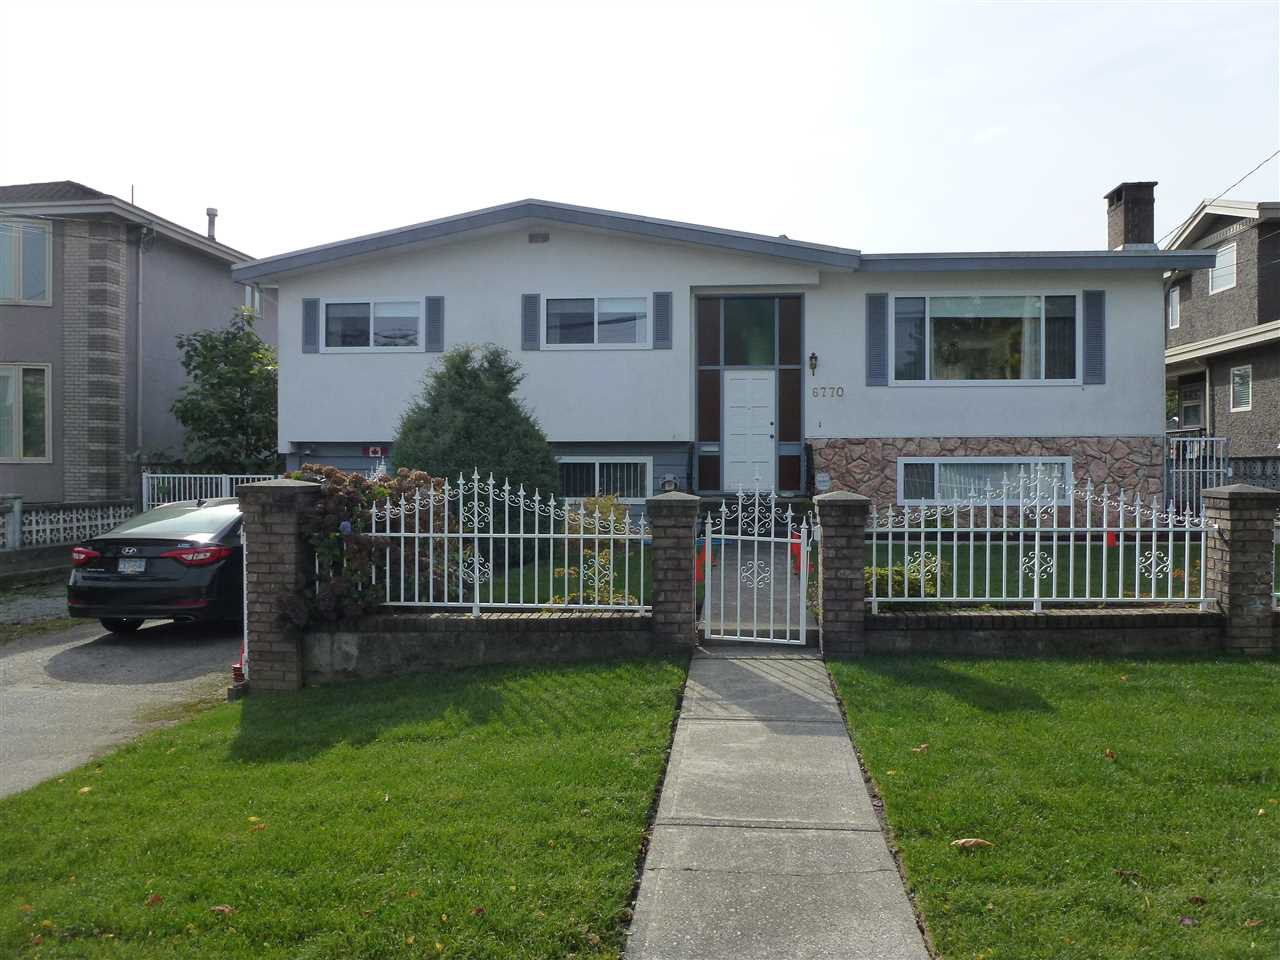 """Main Photo: 6770 NAPIER Street in Burnaby: Sperling-Duthie House for sale in """"WESTRIDGE"""" (Burnaby North)  : MLS®# R2313873"""